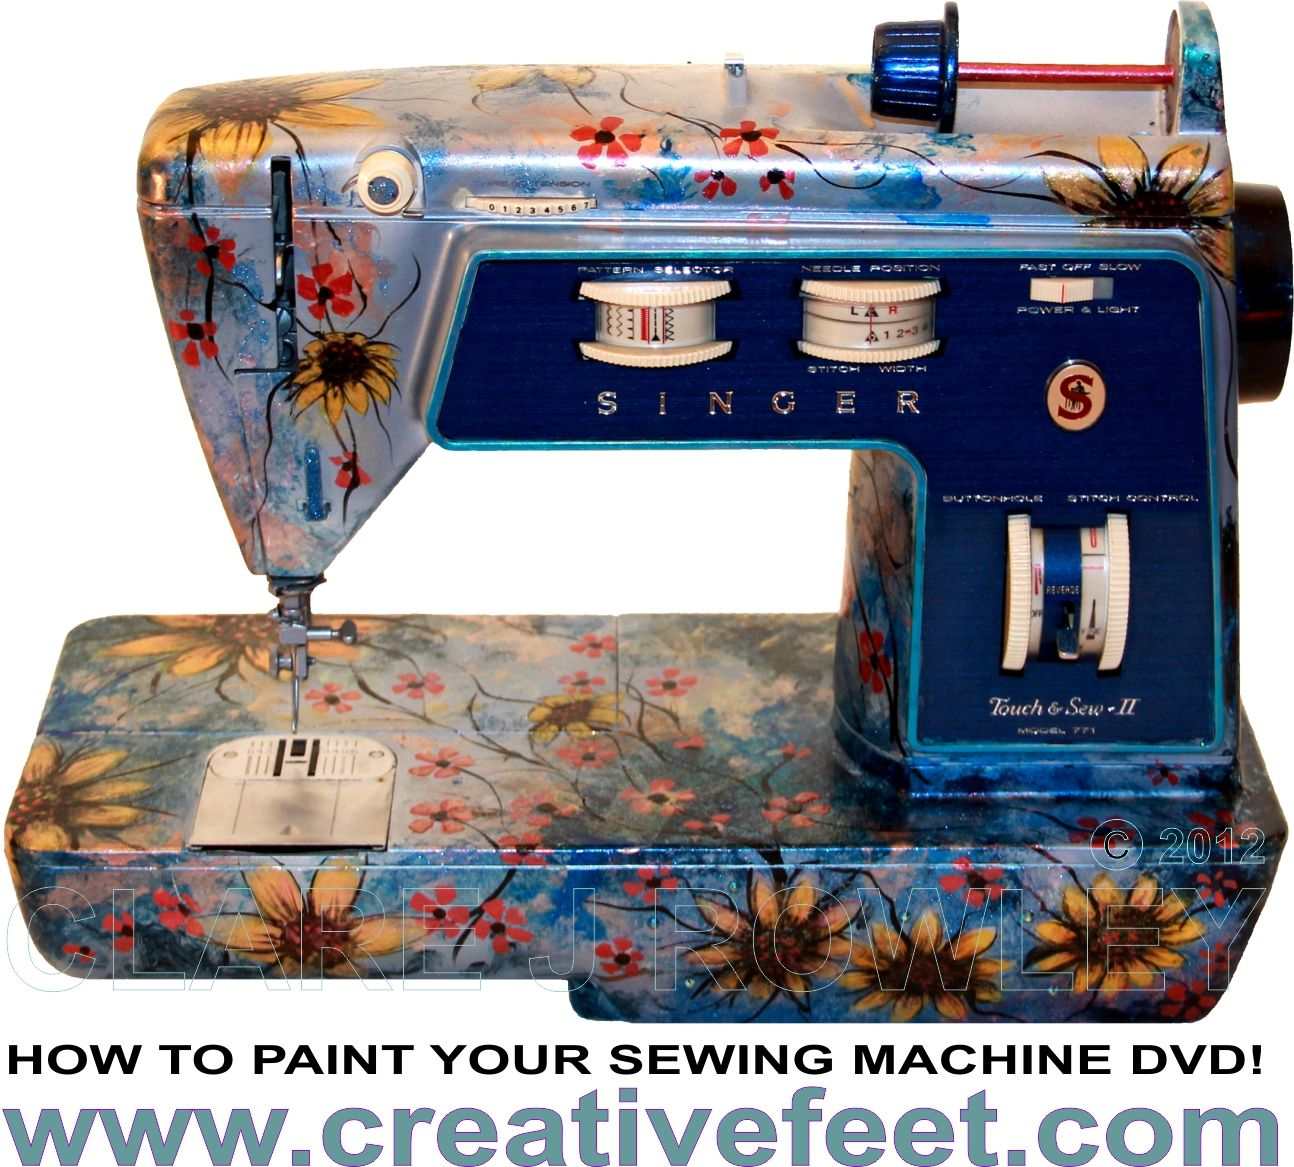 Creative Feet - How To Paint Your Sewing Machine DVD - Sewing ...